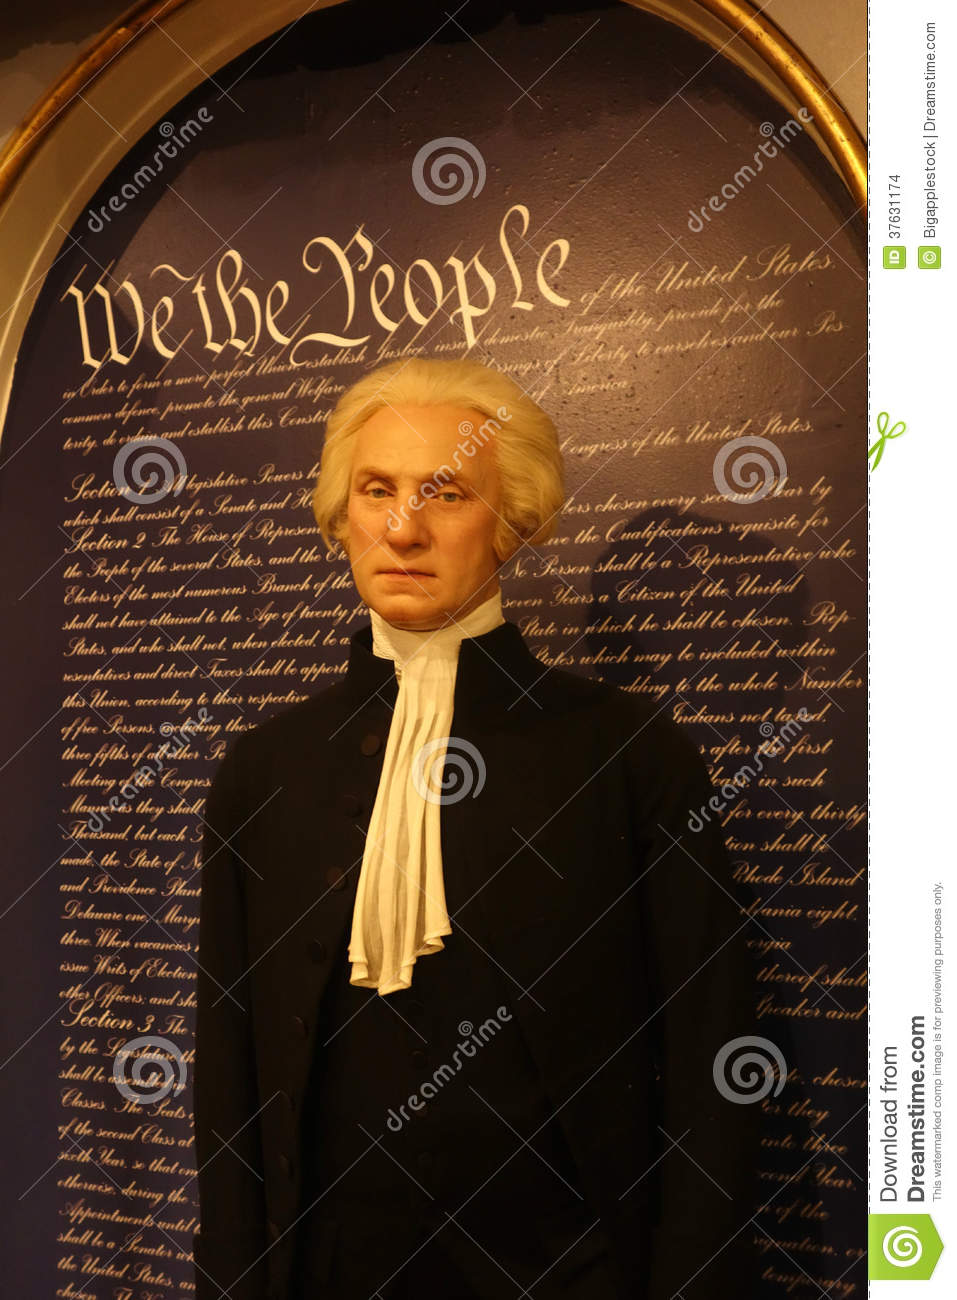 george washington wax figure editorial stock image image us map clip art for new england us map clip art for mass